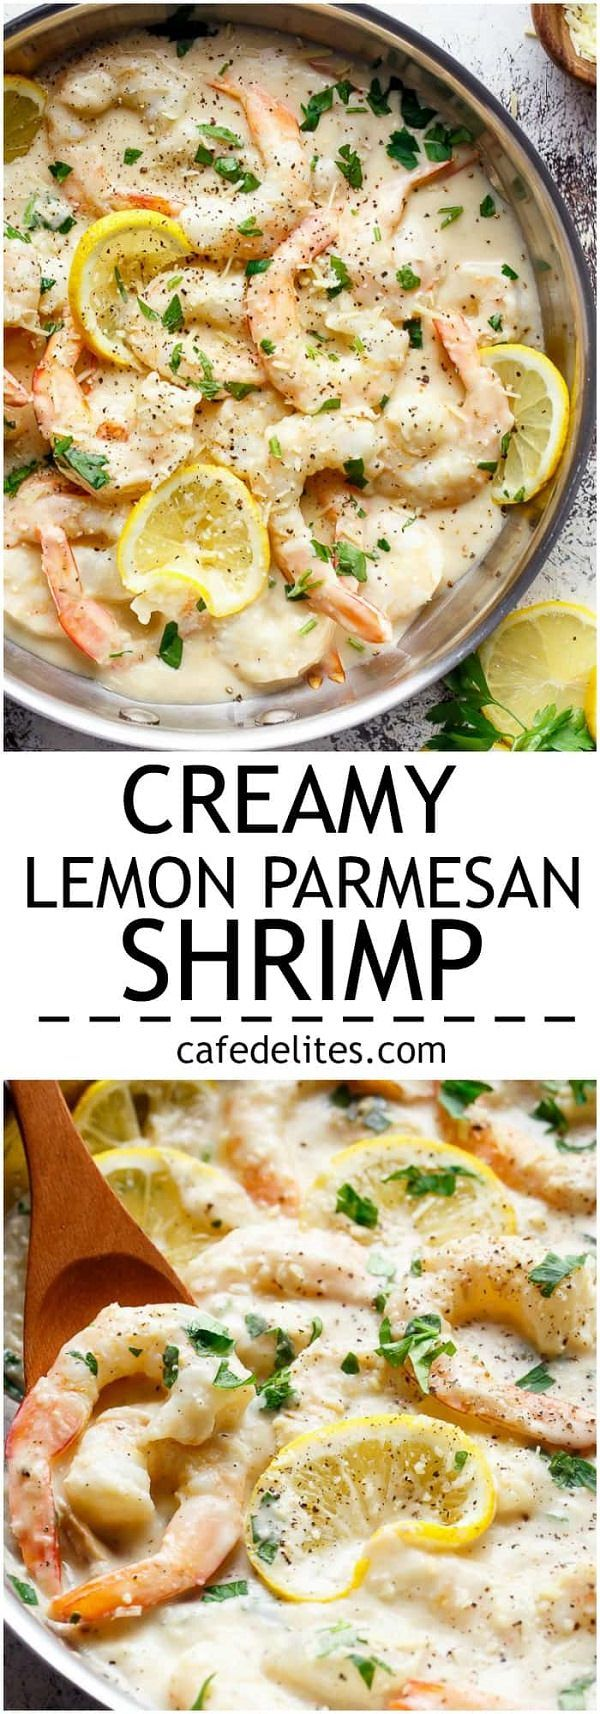 Creamy lemon parmesan shrimp is a gourmet meal! Only minutes to make and full of lemon parmesan flavors with a good kick of garlic and the option of no heavy cream!